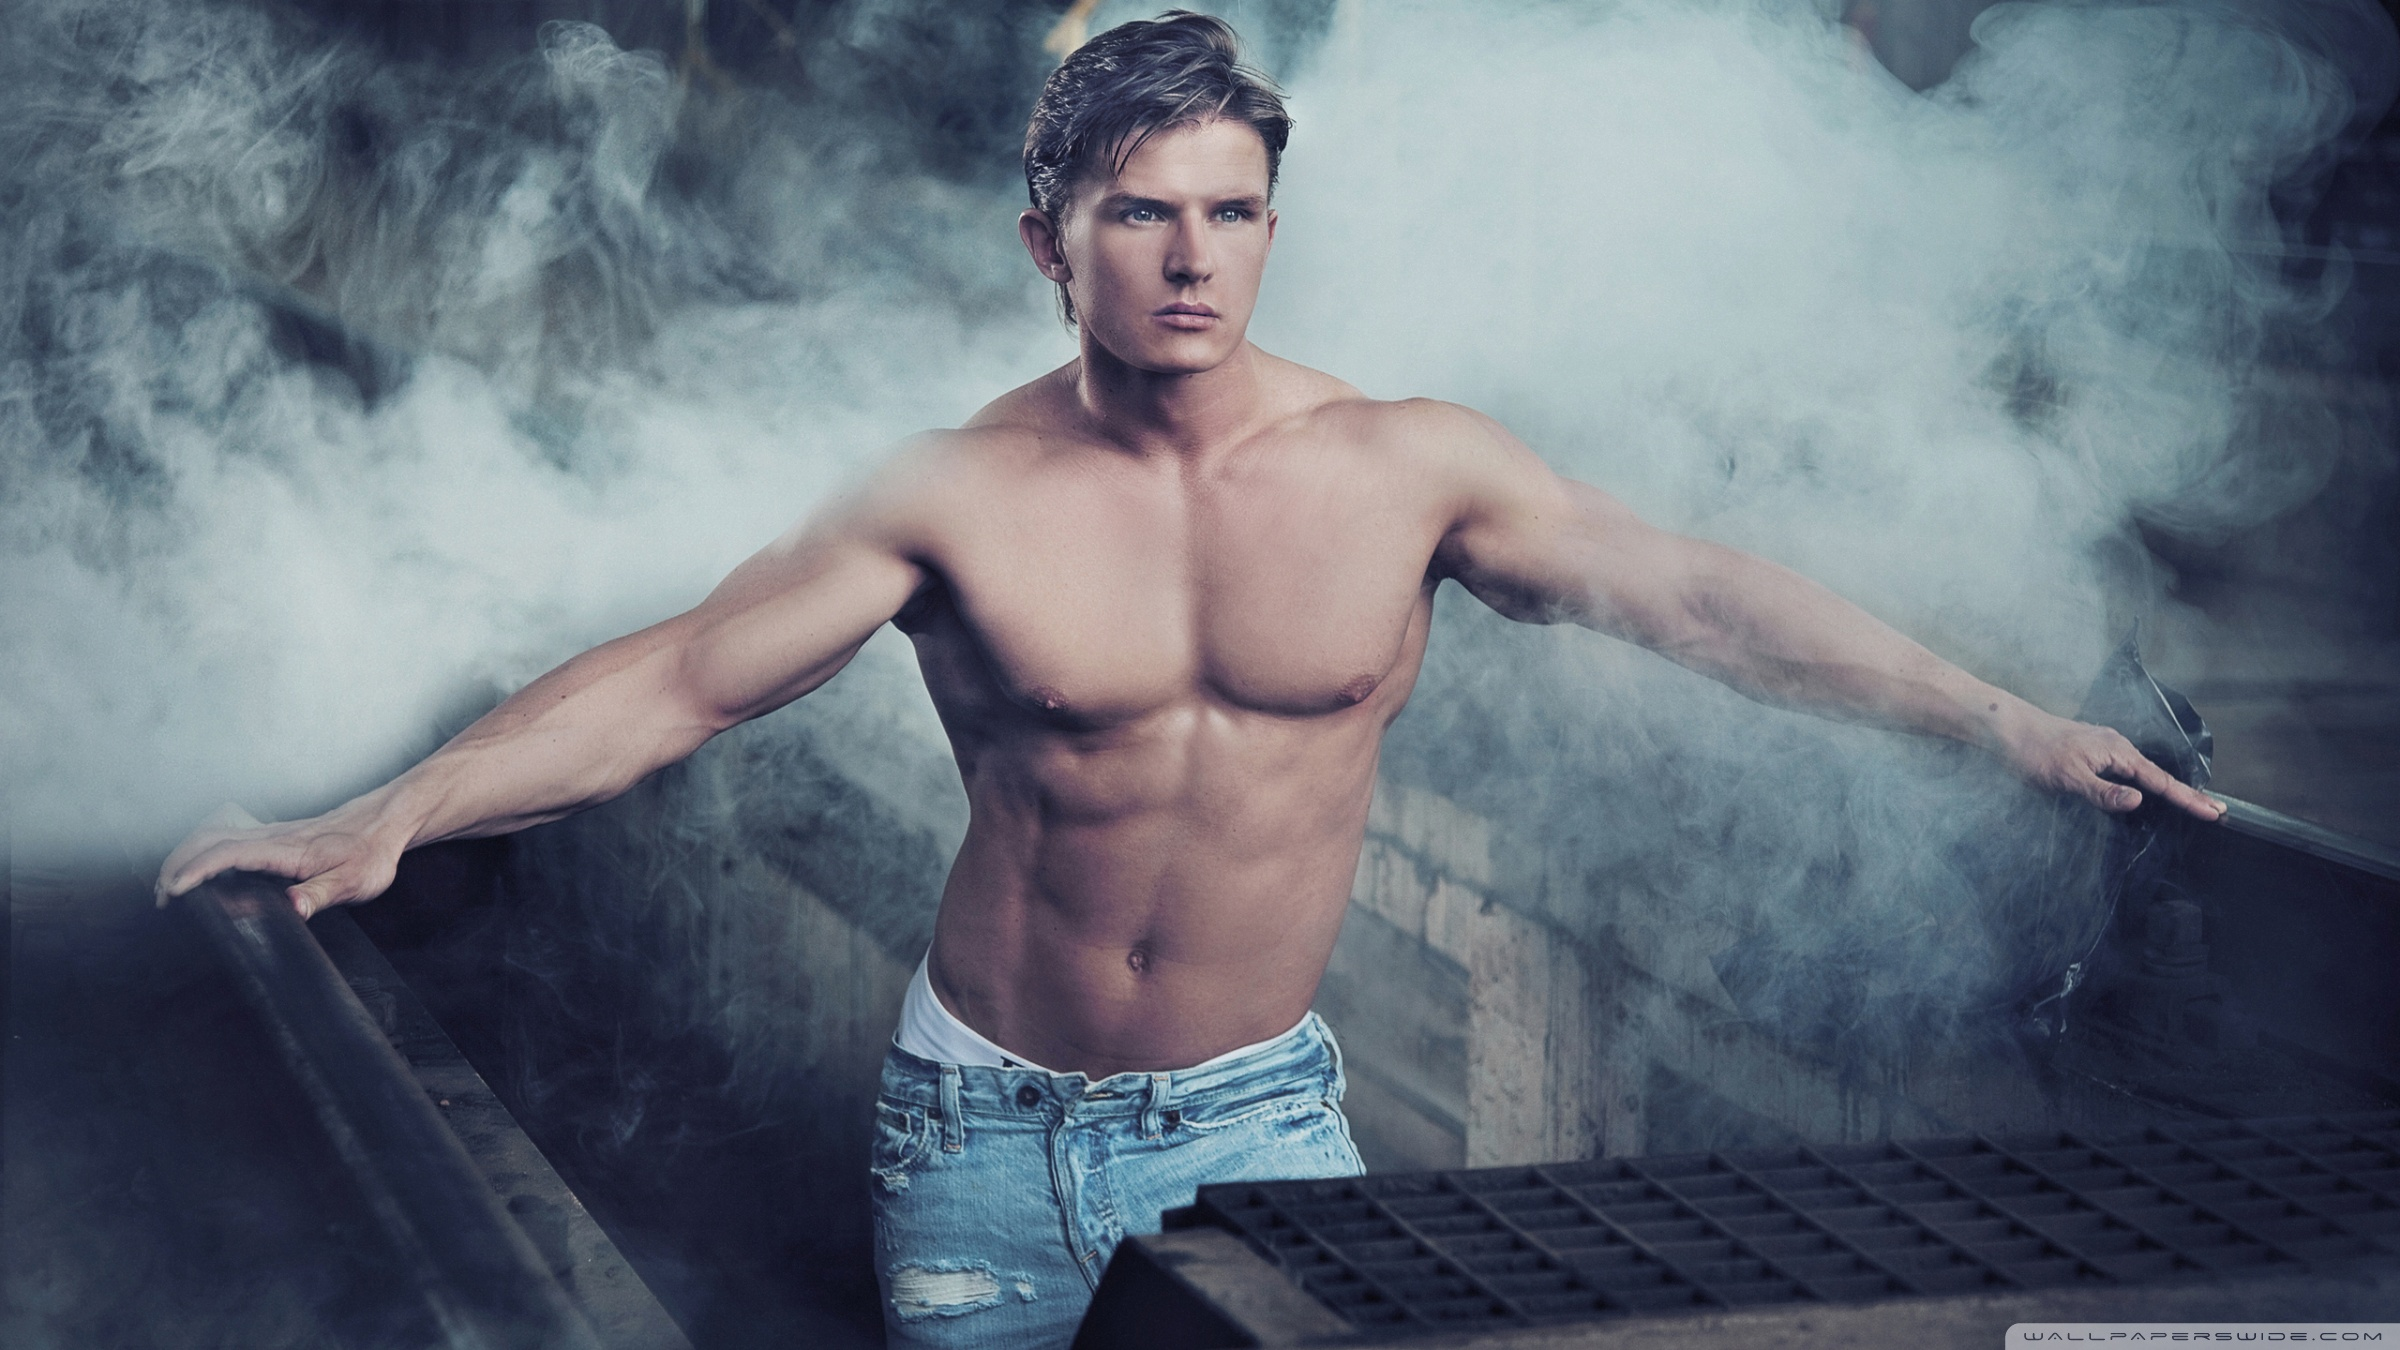 Male Models Wallpapers